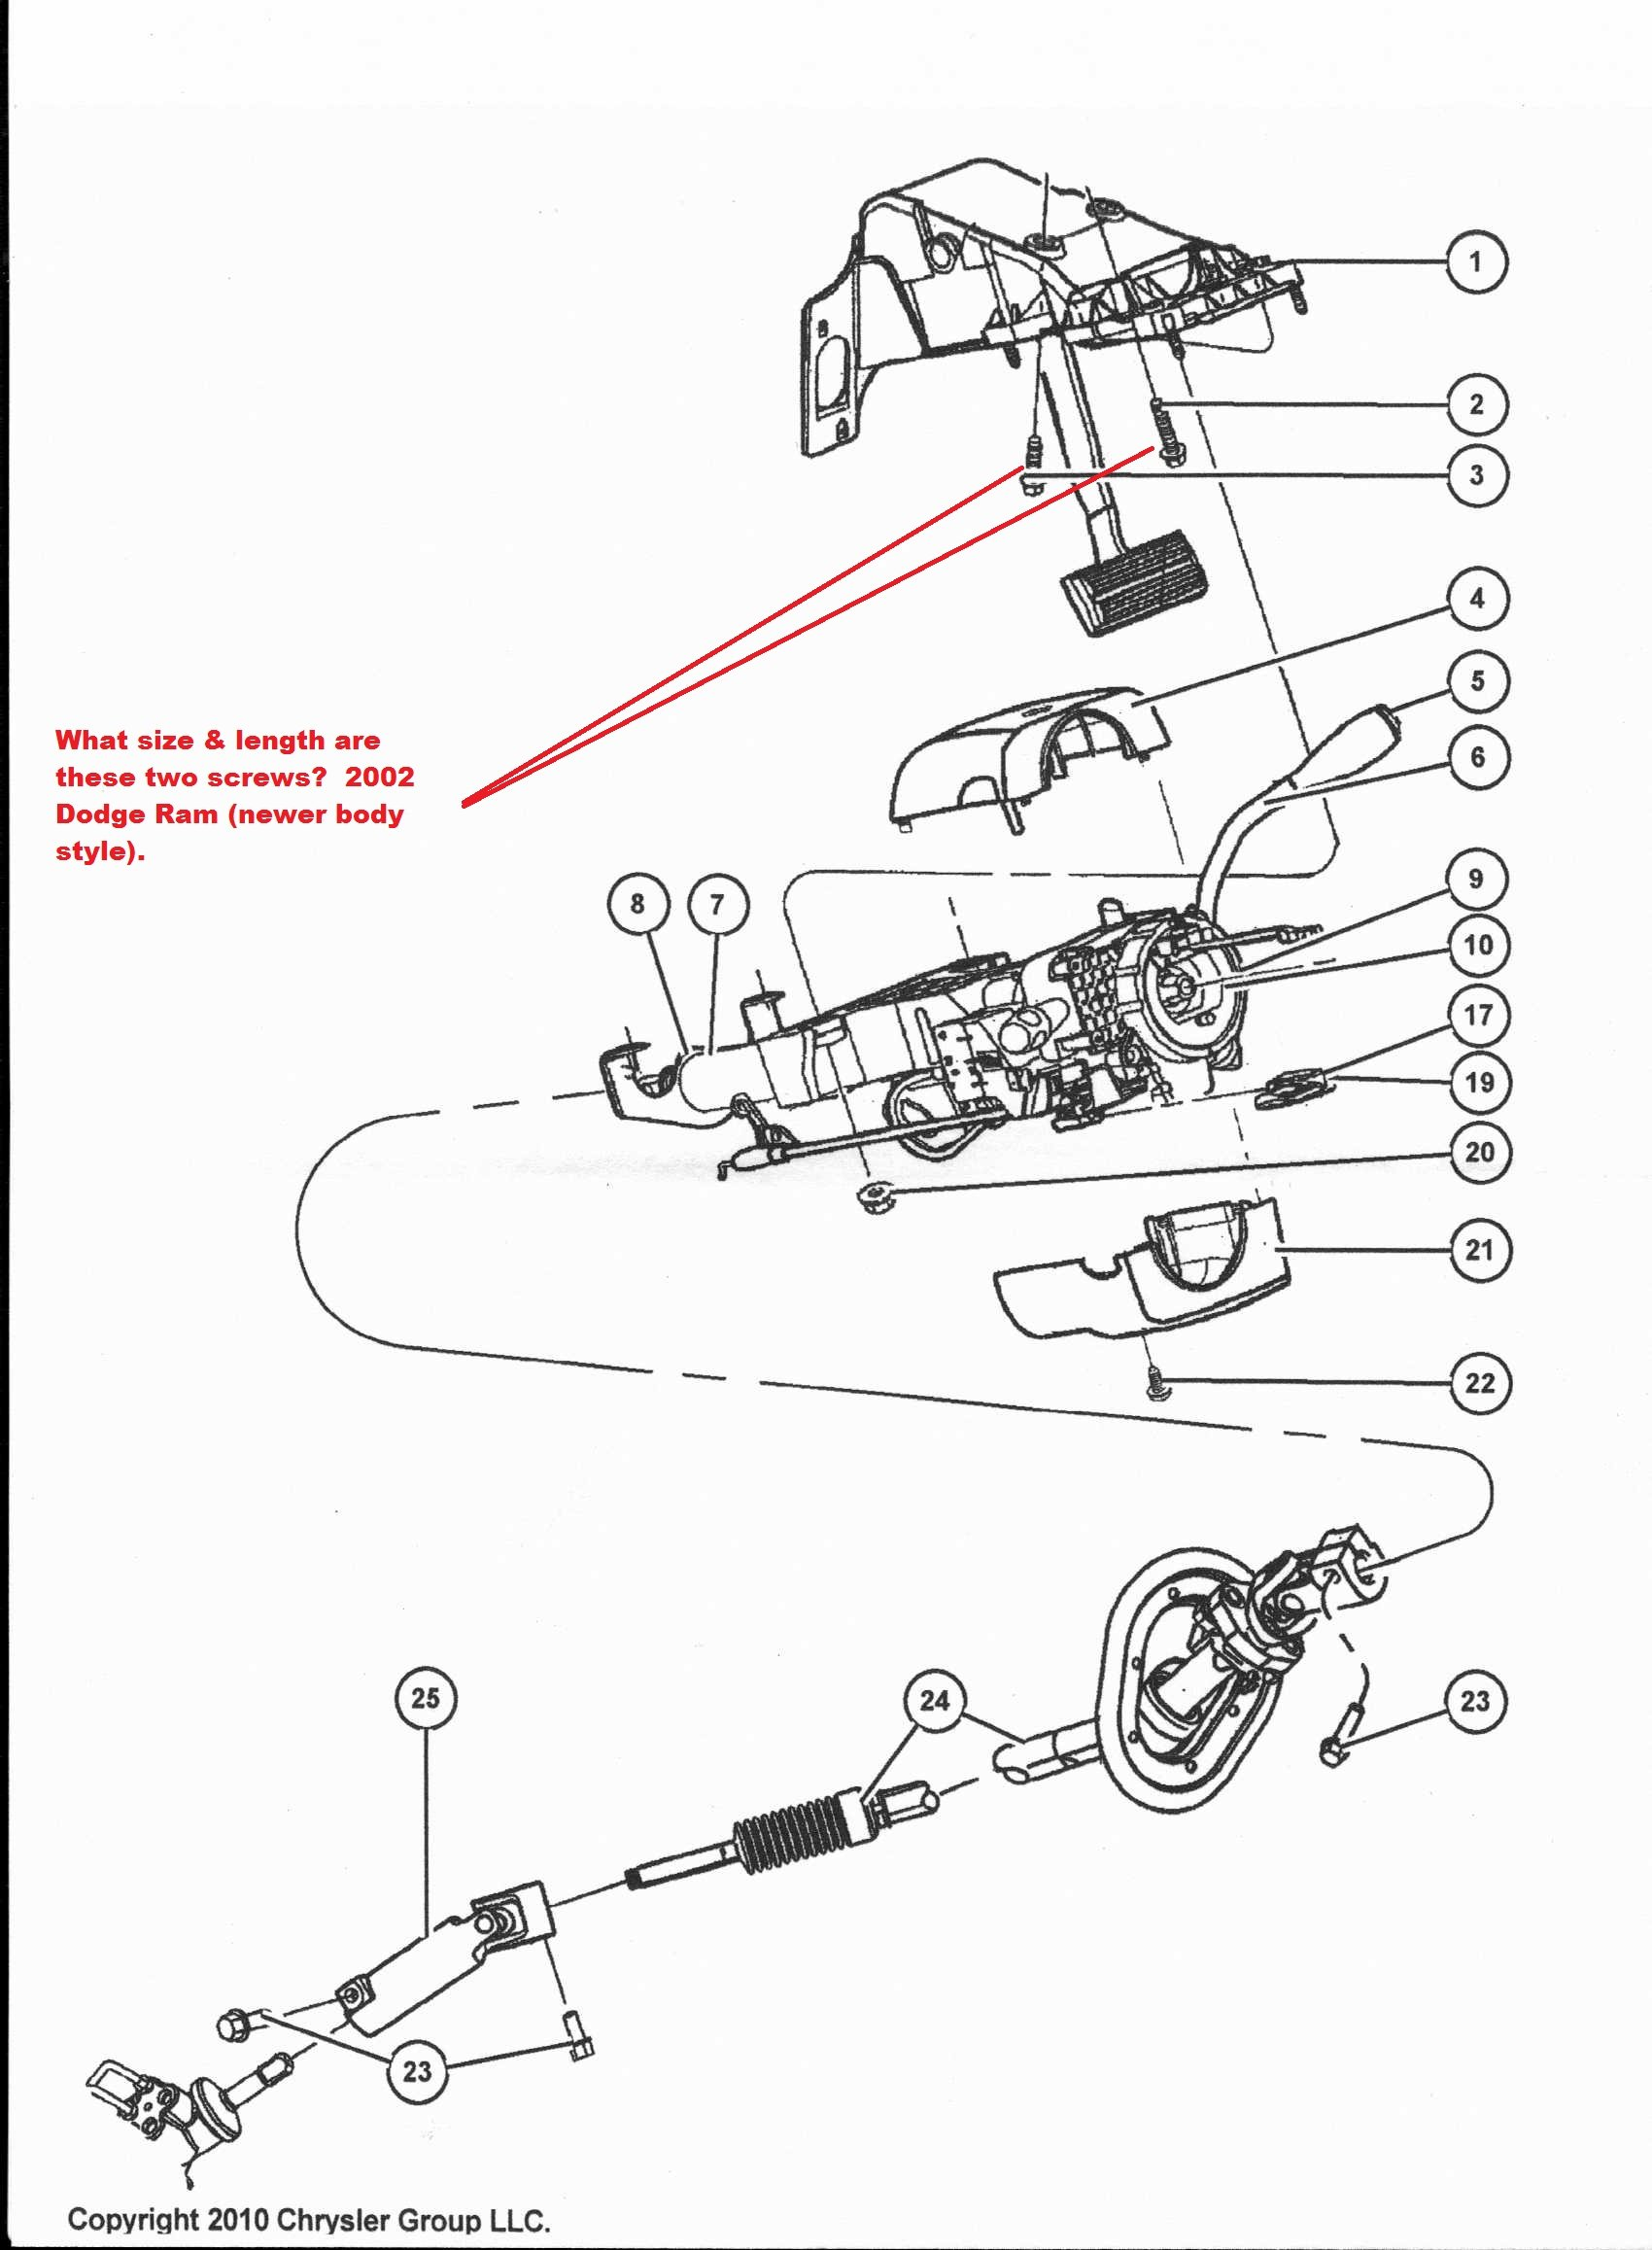 i have a 2002 dodge ram 1500 2wd, 4.7 litre. all front end ... 1996 dodge ram 1500 tail light wiring diagram 2002 dodge ram 1500 steering column wiring diagram #13